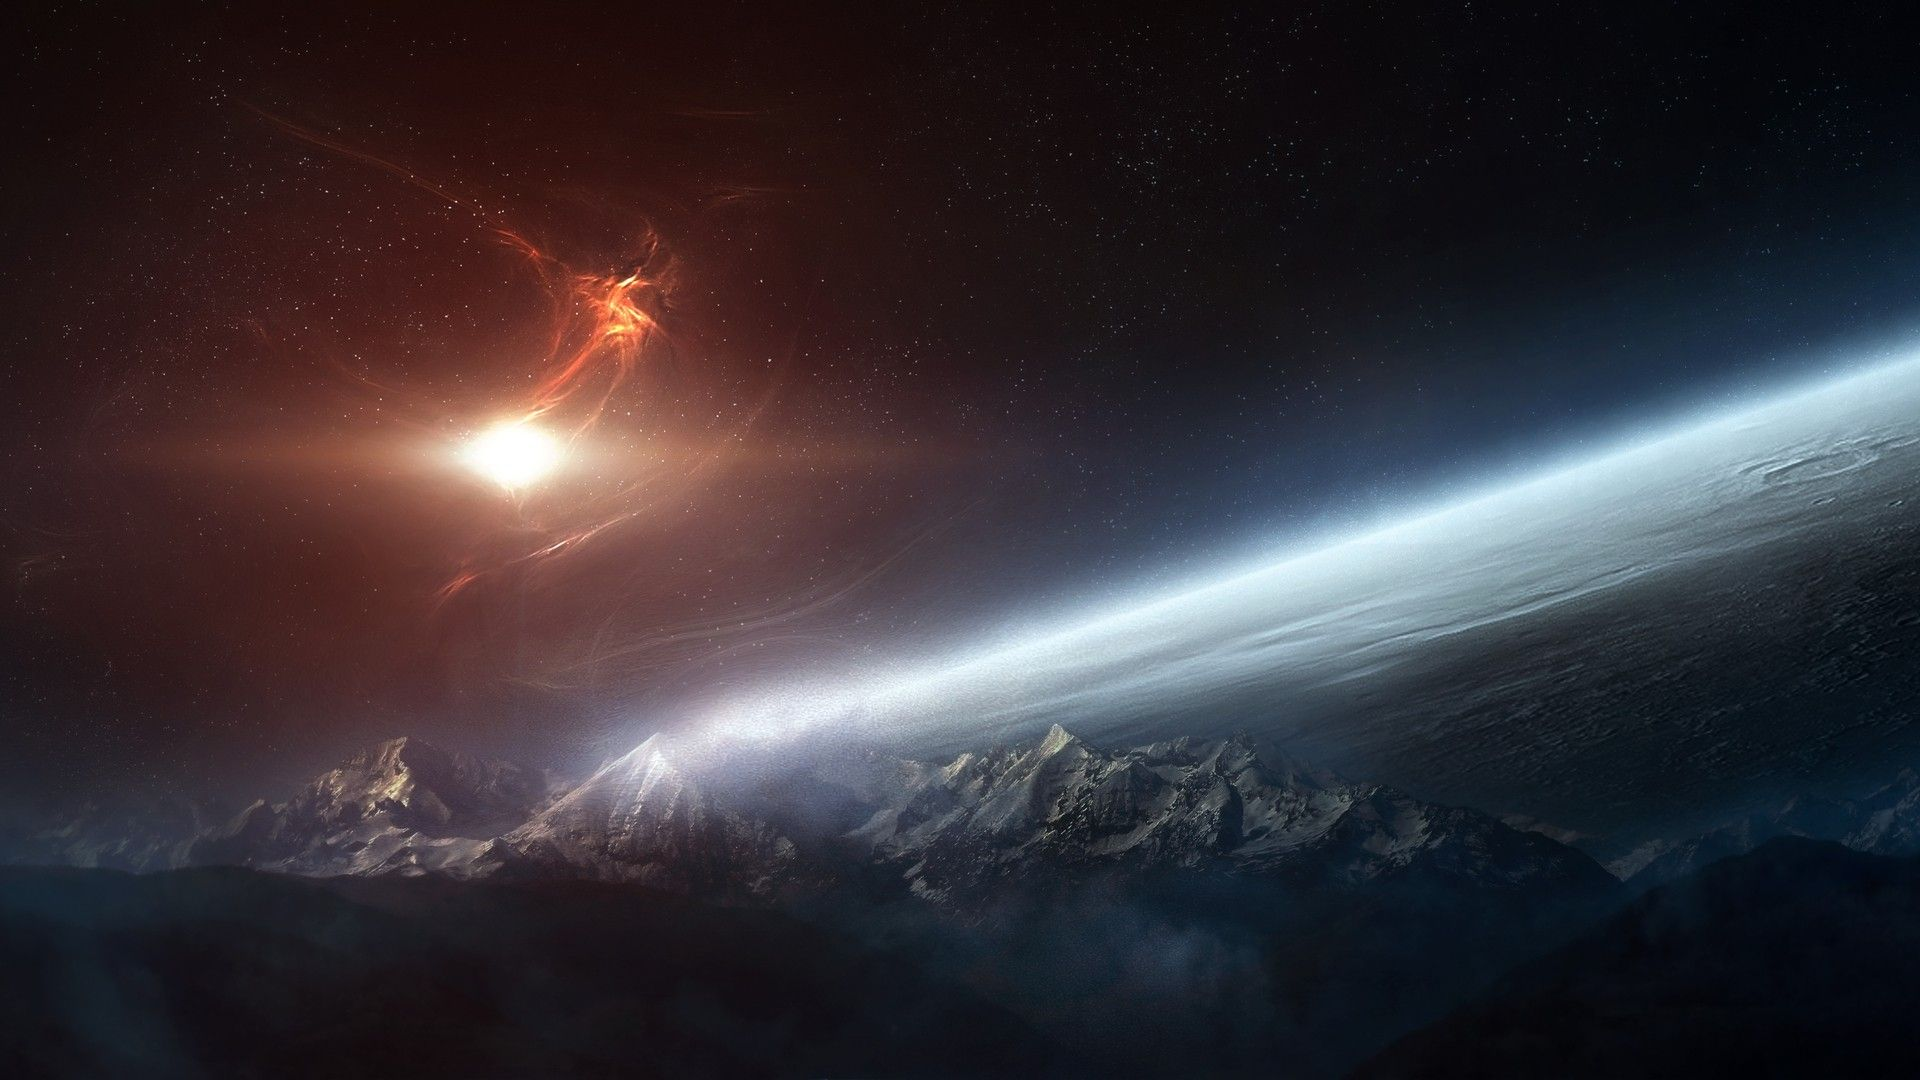 Outer Space HD Wallpaper » FullHDWpp - Full HD Wallpapers 1920x1080